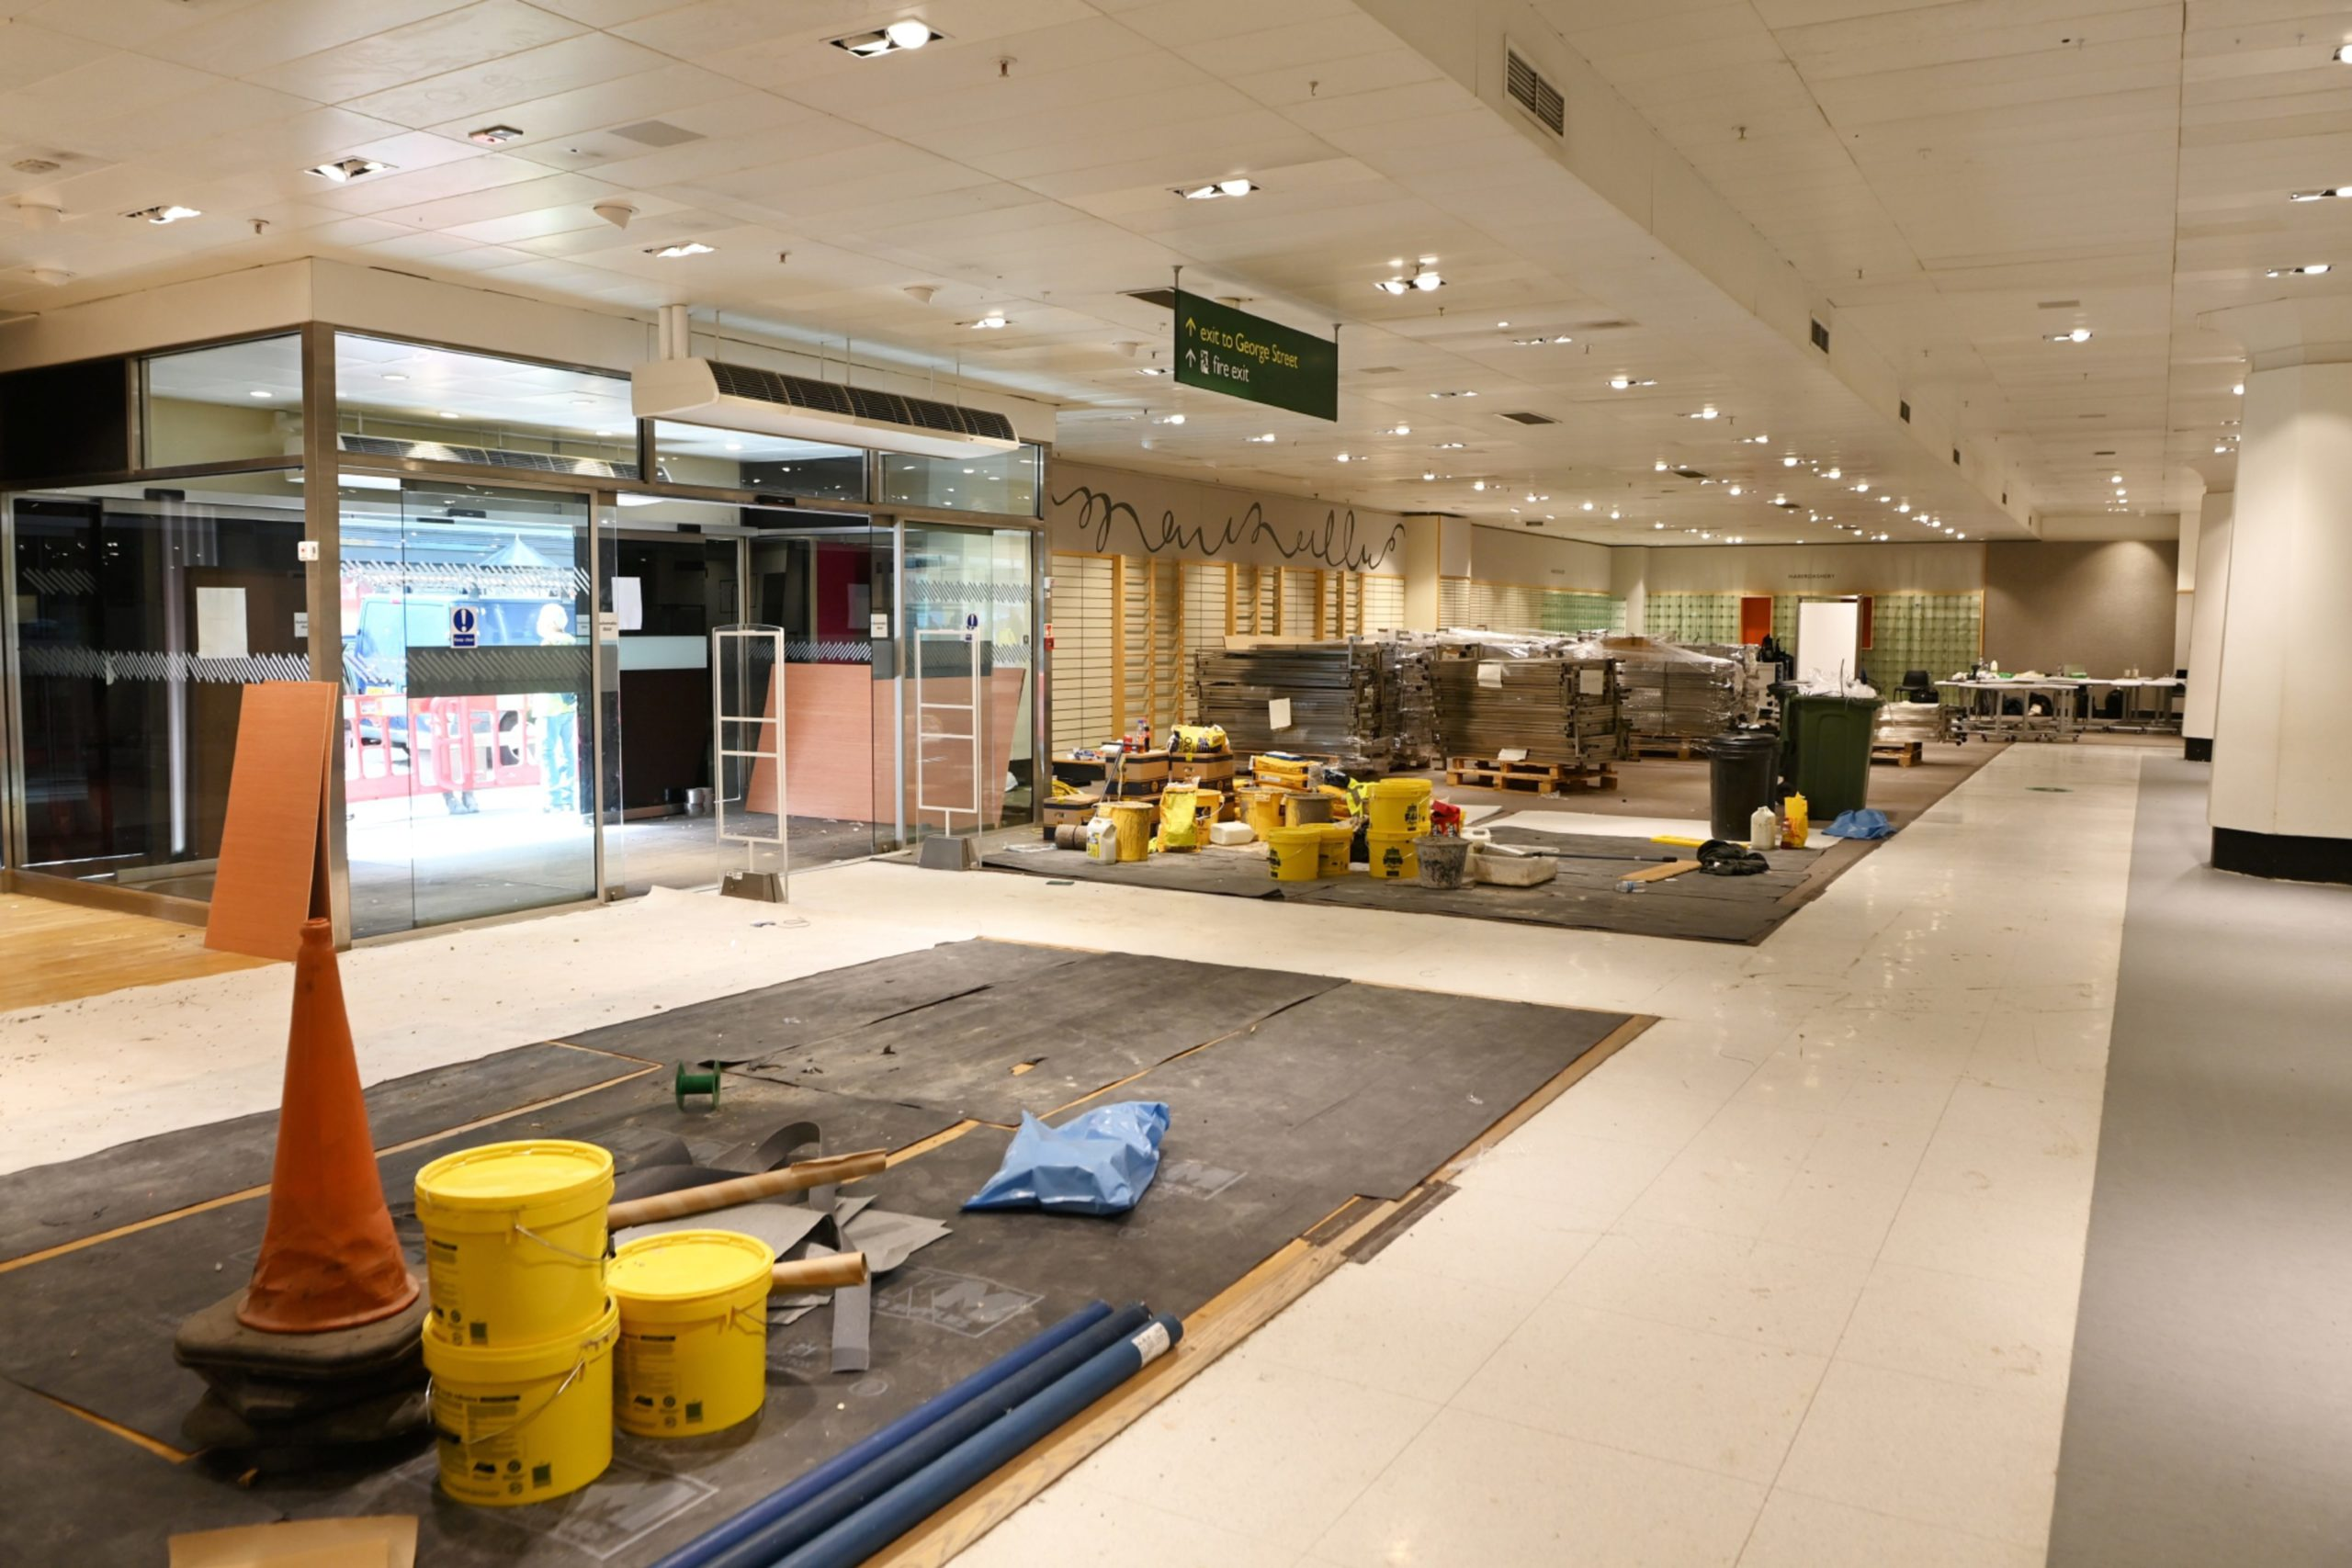 Work on the new centre will be completed by mid-September.